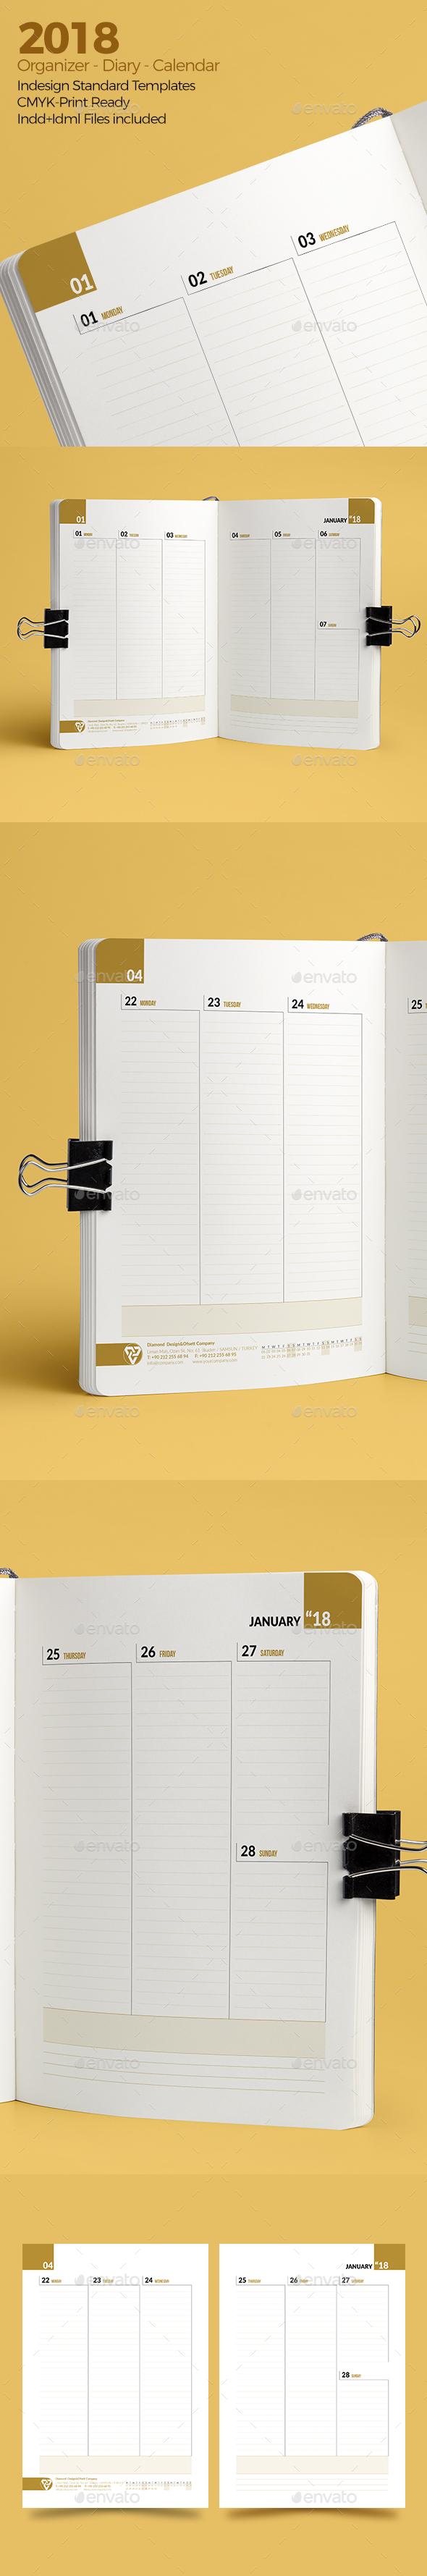 Weekly Diary Planner 2018 v3 - Calendars Stationery